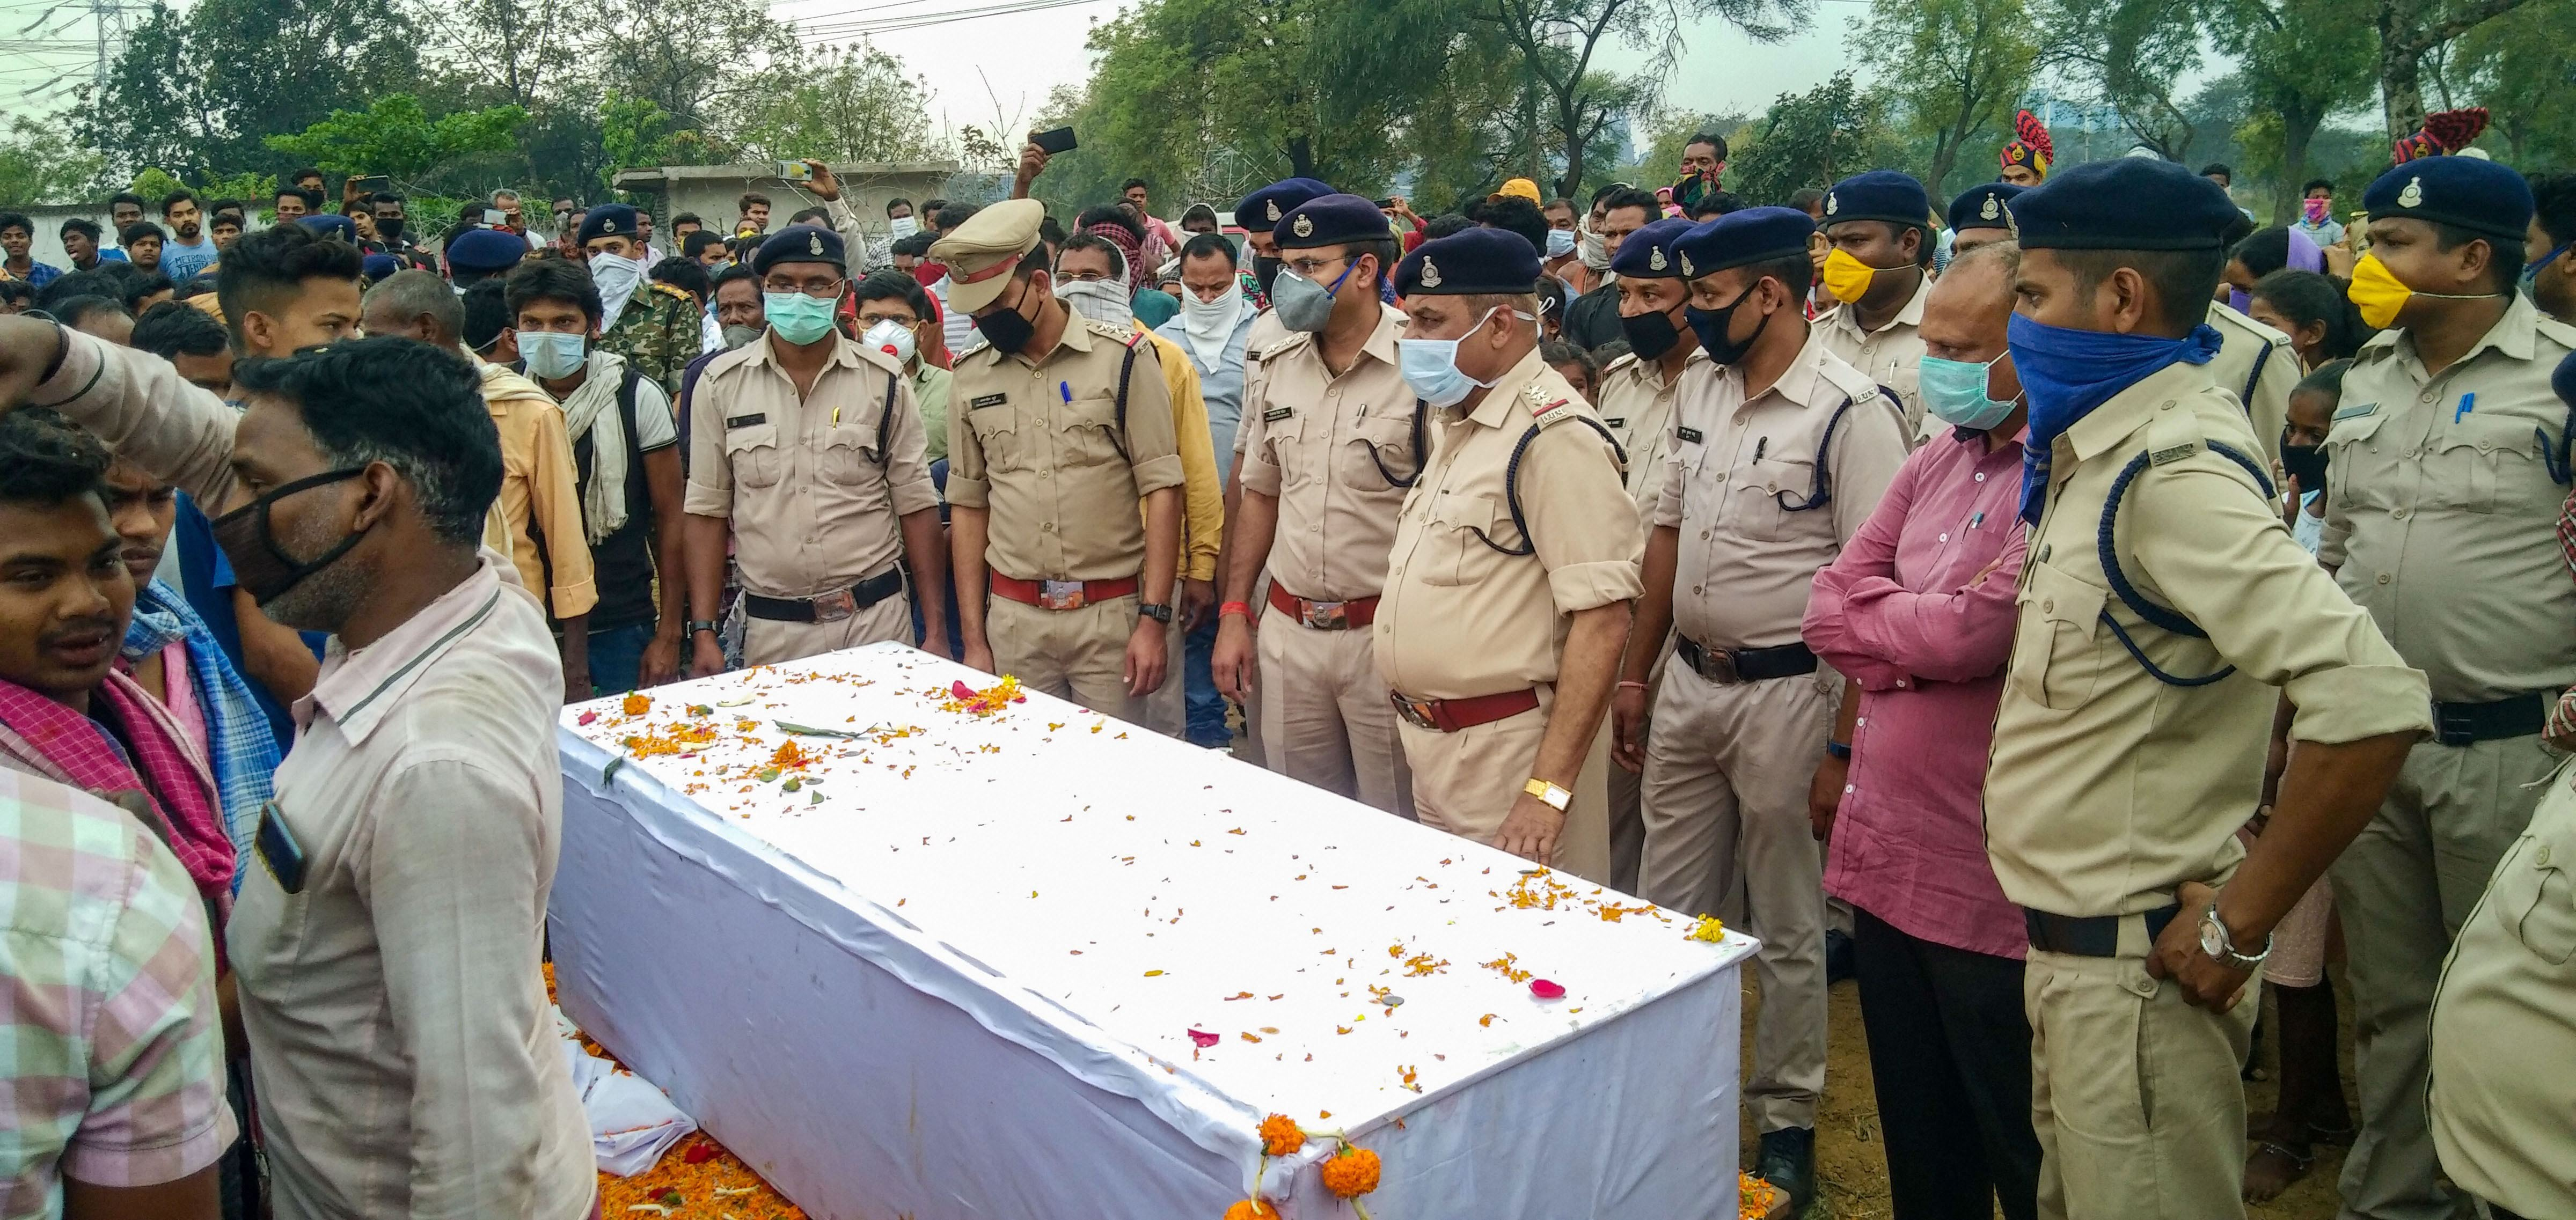 Chhattisgarh Police personnal pay tribute to martyrs who died in a fierce gun-battle with naxals in forests of Chhattisgarhs insurgency-hit Sukma district on March 21, 2020, at Sukma Police Line, Monday, March 23, 2020.